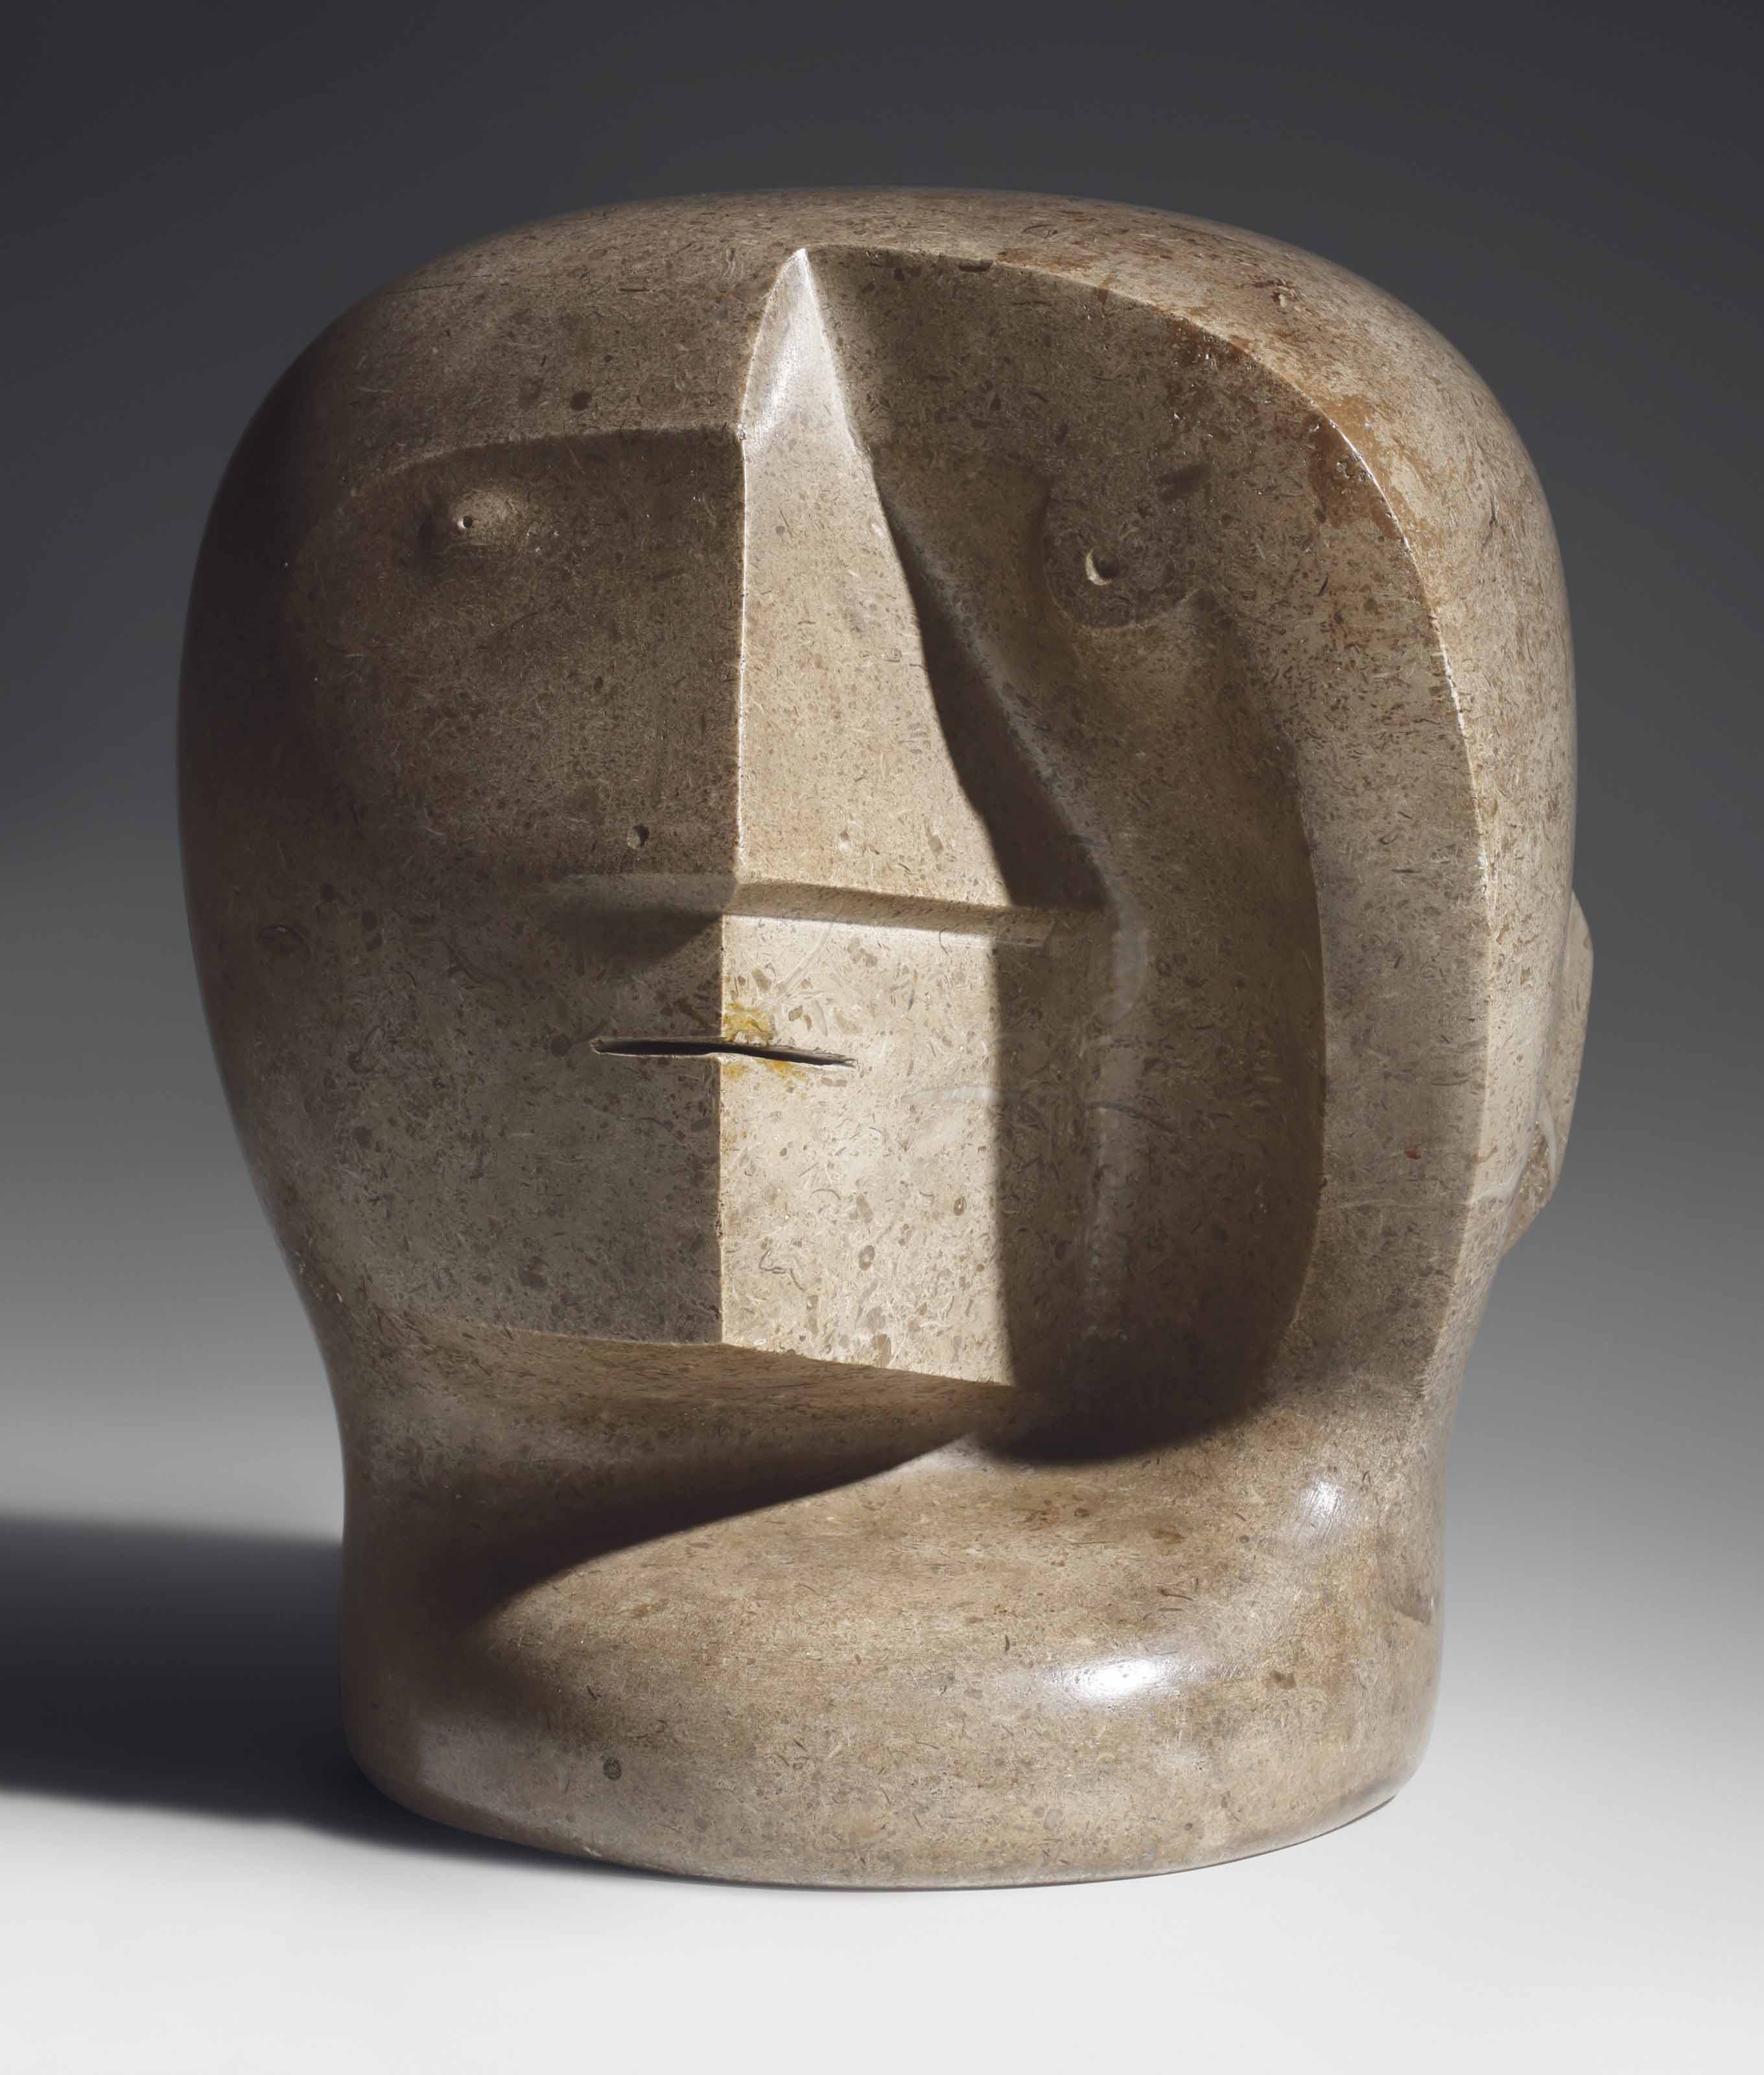 Henry Moore O.M., C.H. (1898-1